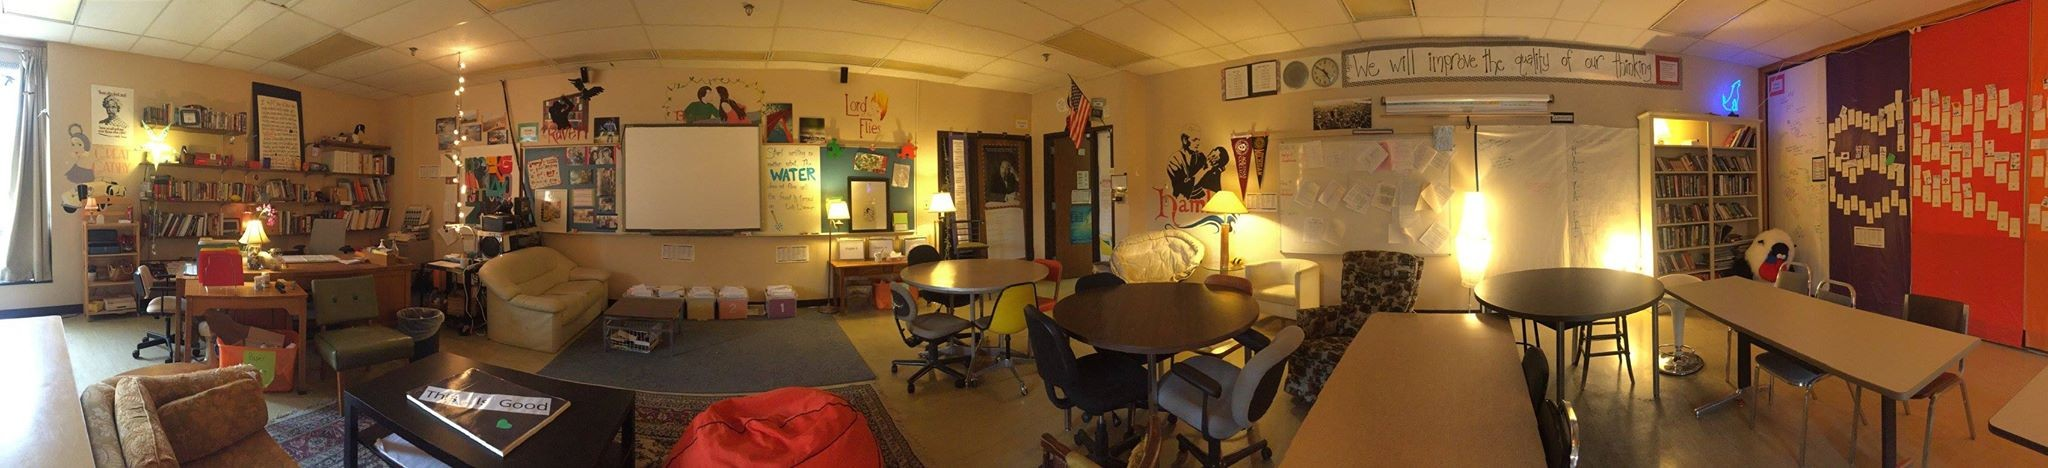 Classroom Eye Candy 1: A Flexible-Seating Paradise | Cult of ...